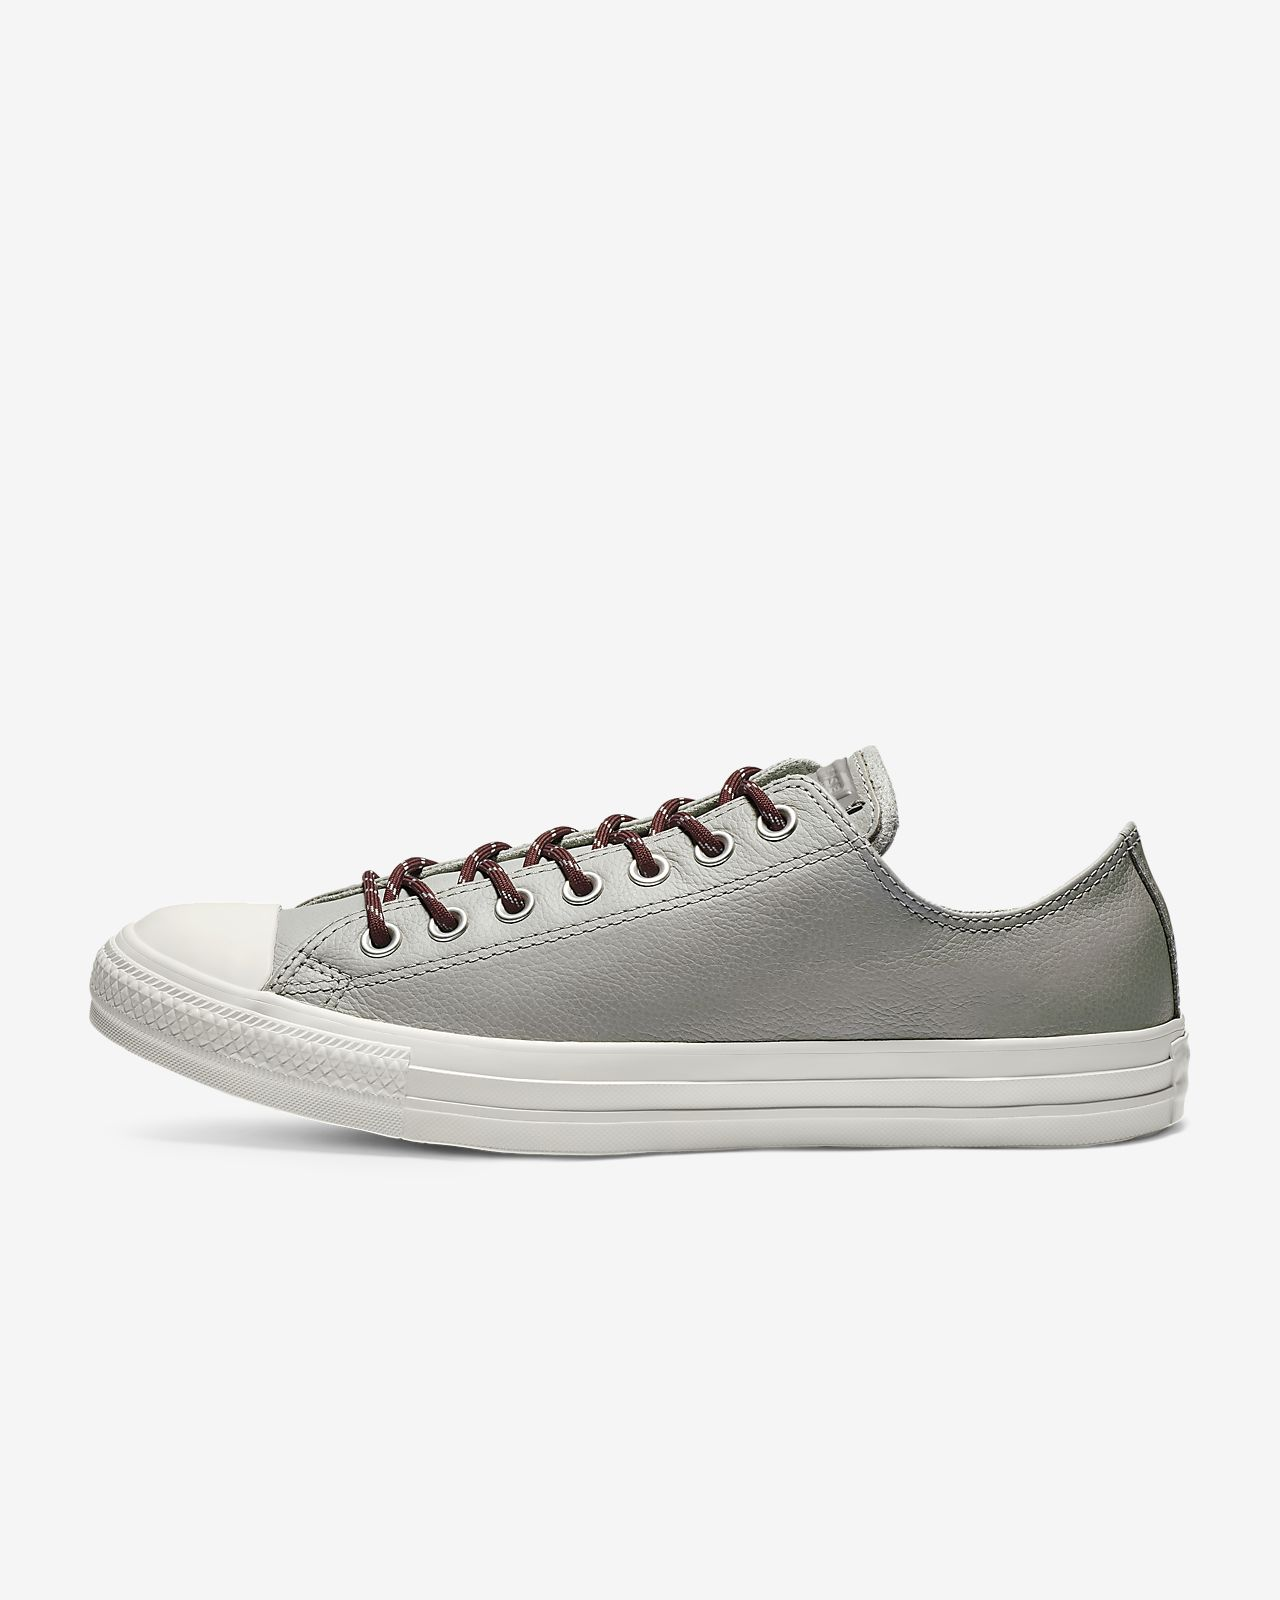 Chuck Taylor All Star Seasonal Leather Low Top Unisex Shoe